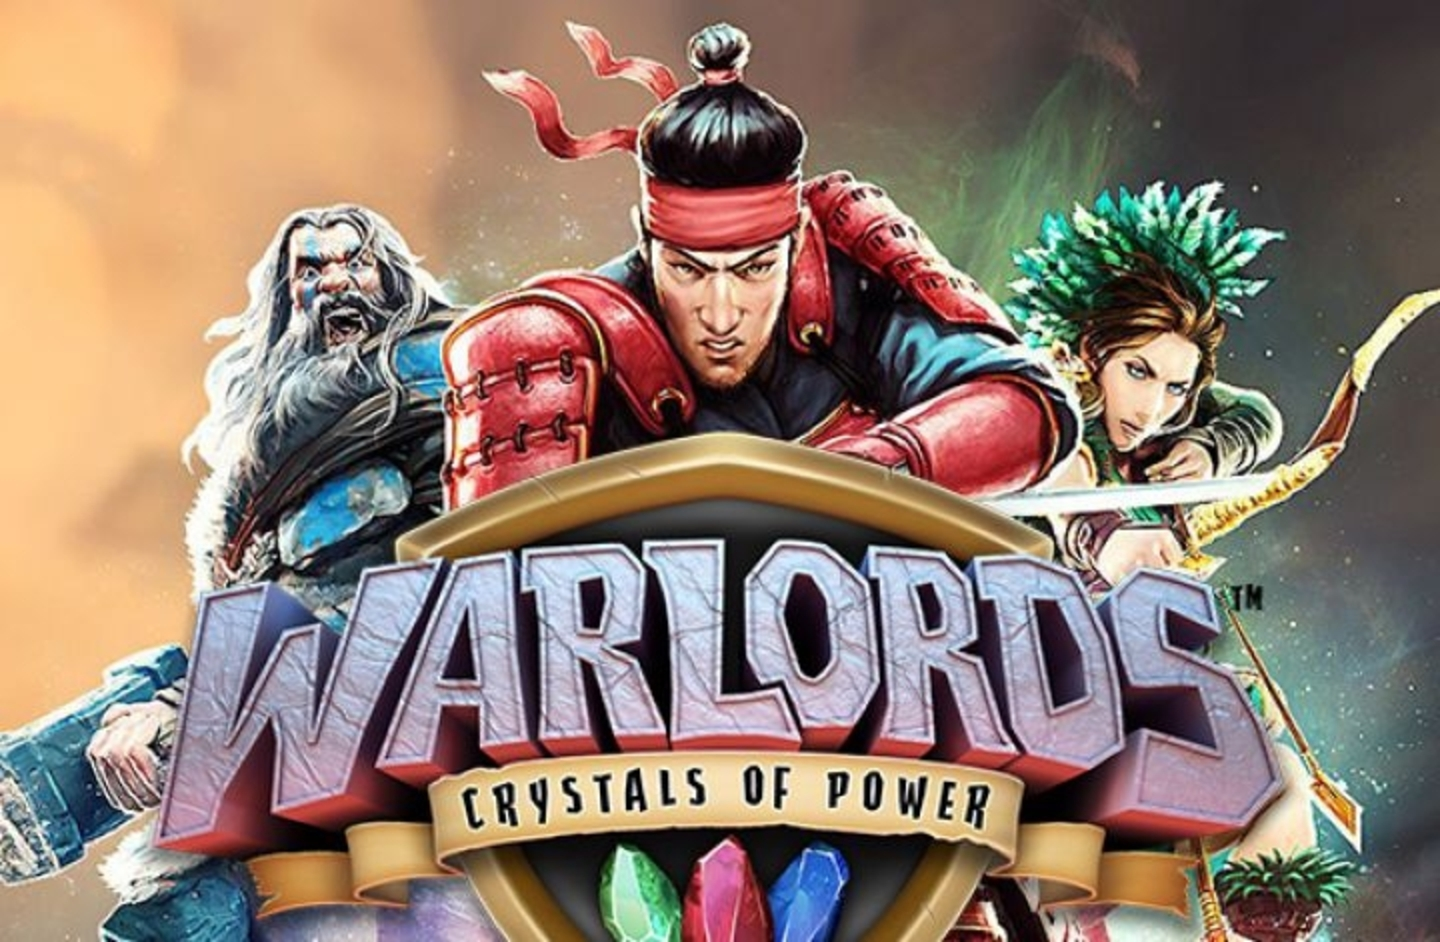 The Warlords: Crystals of Power Online Slot Demo Game by NetEnt